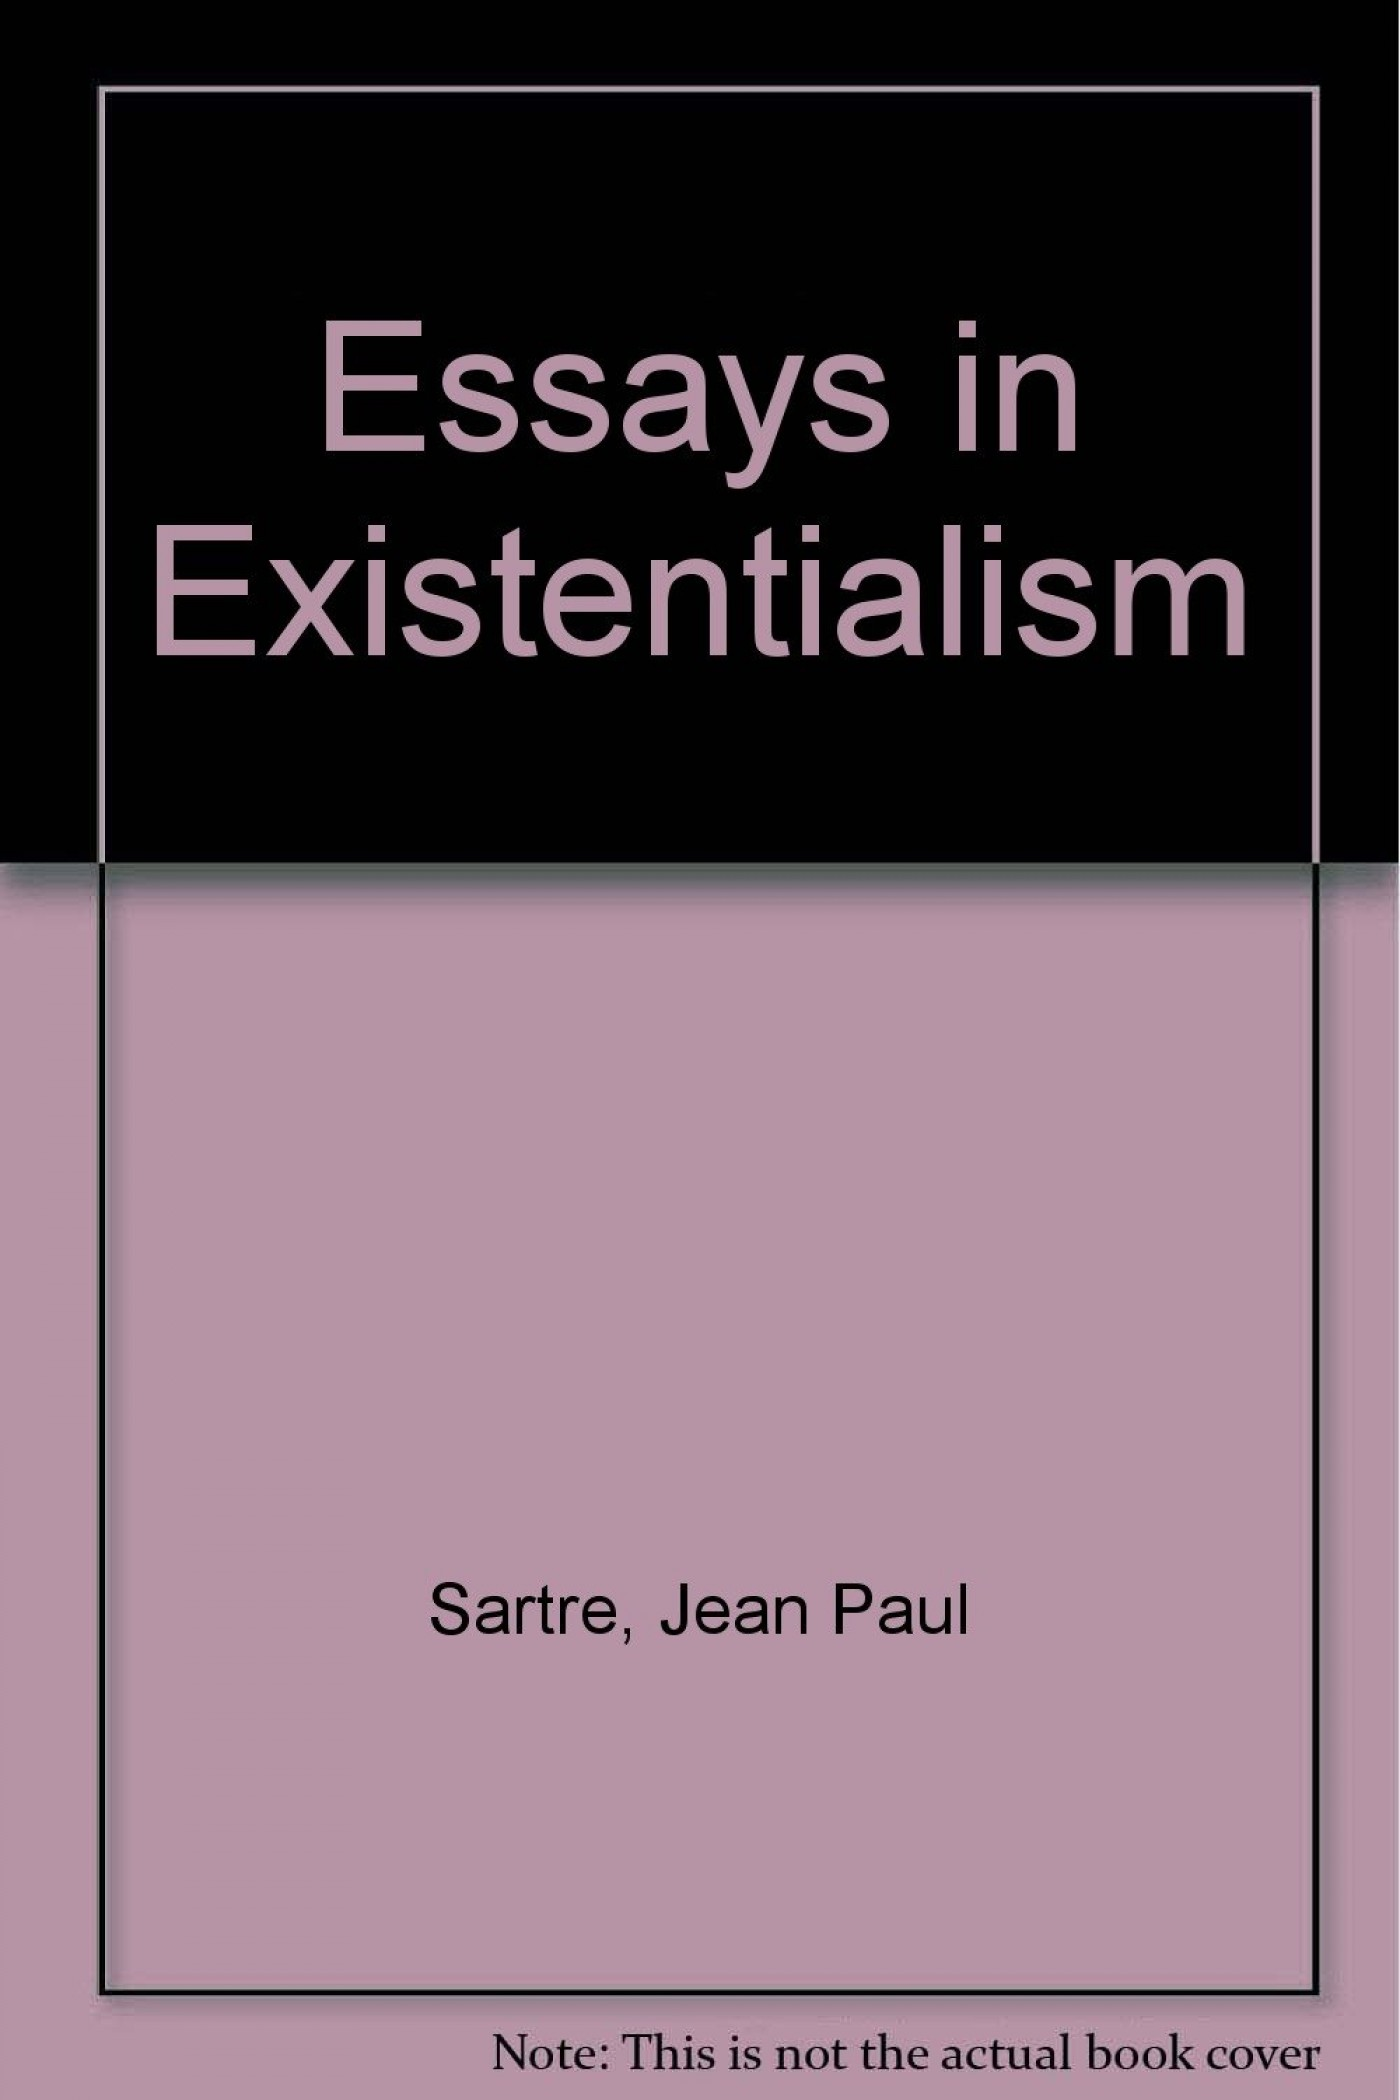 002 61qllswwwgl Essay Example Essays In Outstanding Existentialism Sartre Tumblr Clarke Lexa 1400